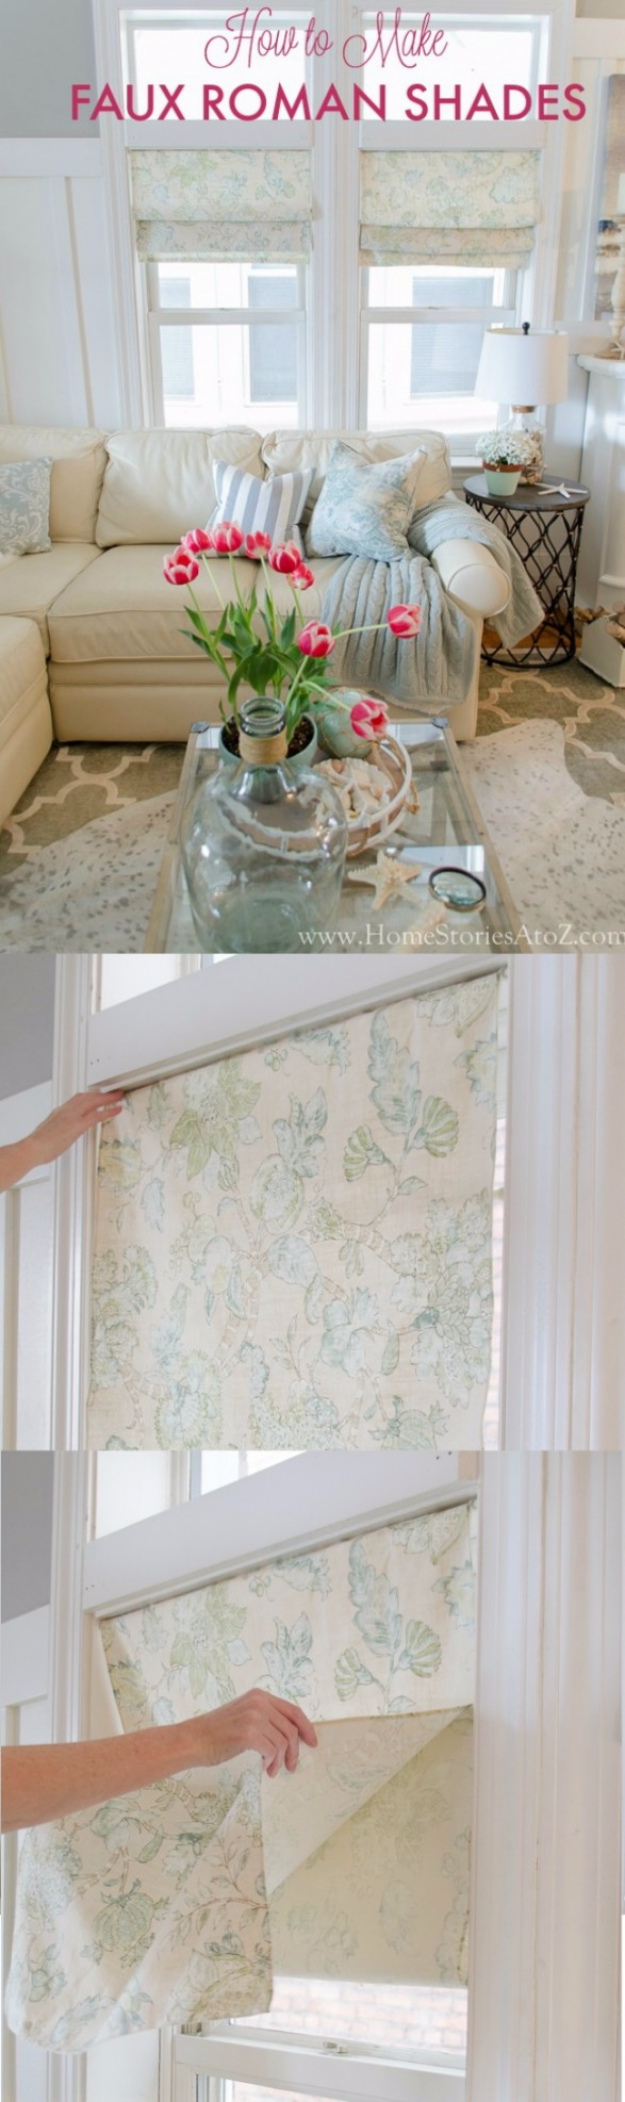 50 DIY Curtains And Drapery Ideas   DIY Faux Roman Shades   Easy No Sew  Ideas